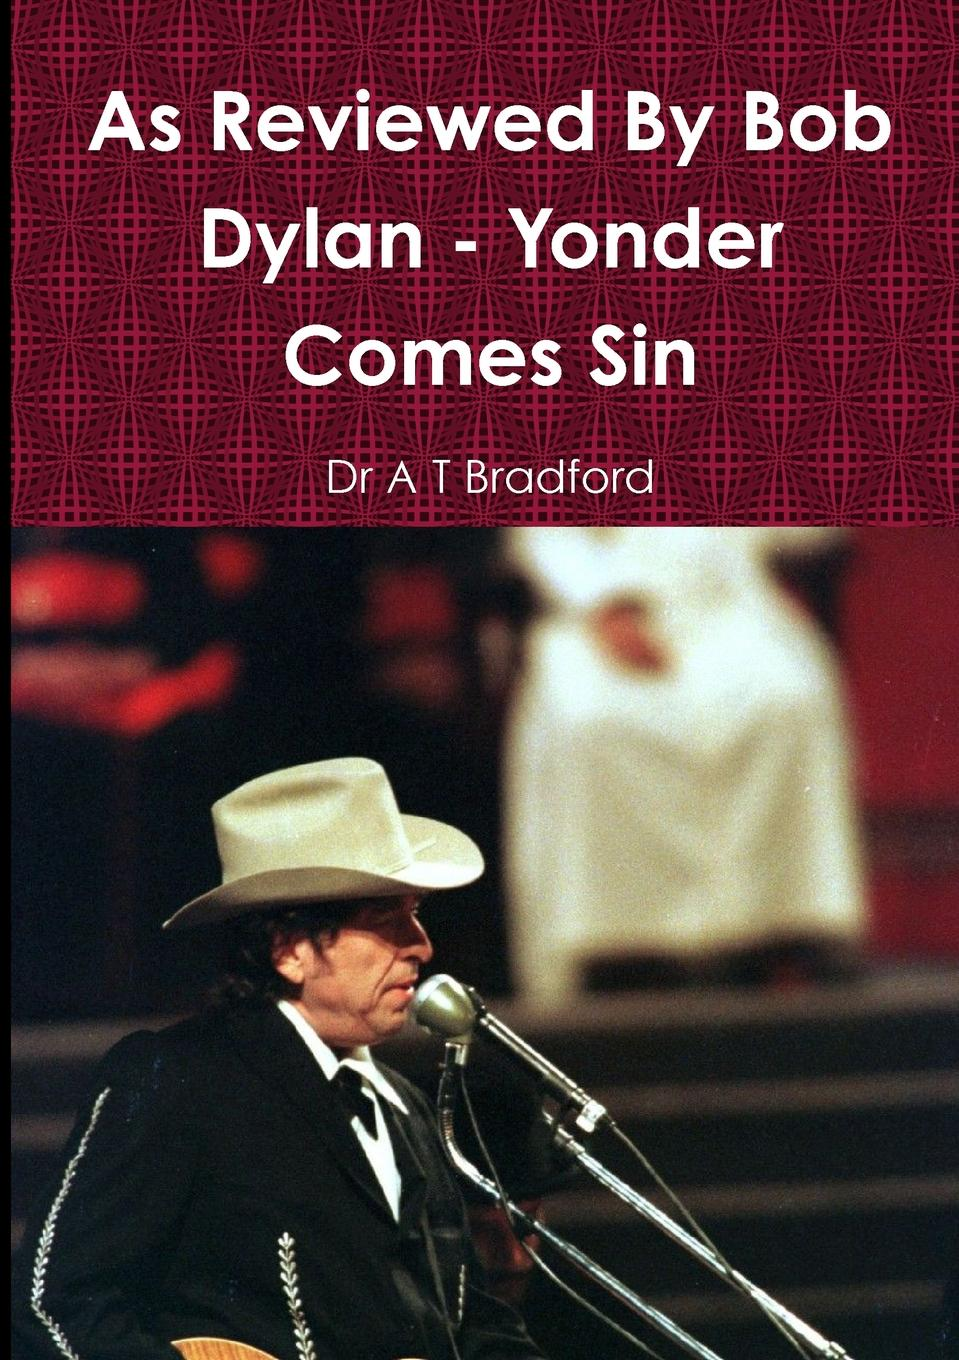 Dr A T Bradford As Reviewed By Bob Dylan - Yonder Comes Sin